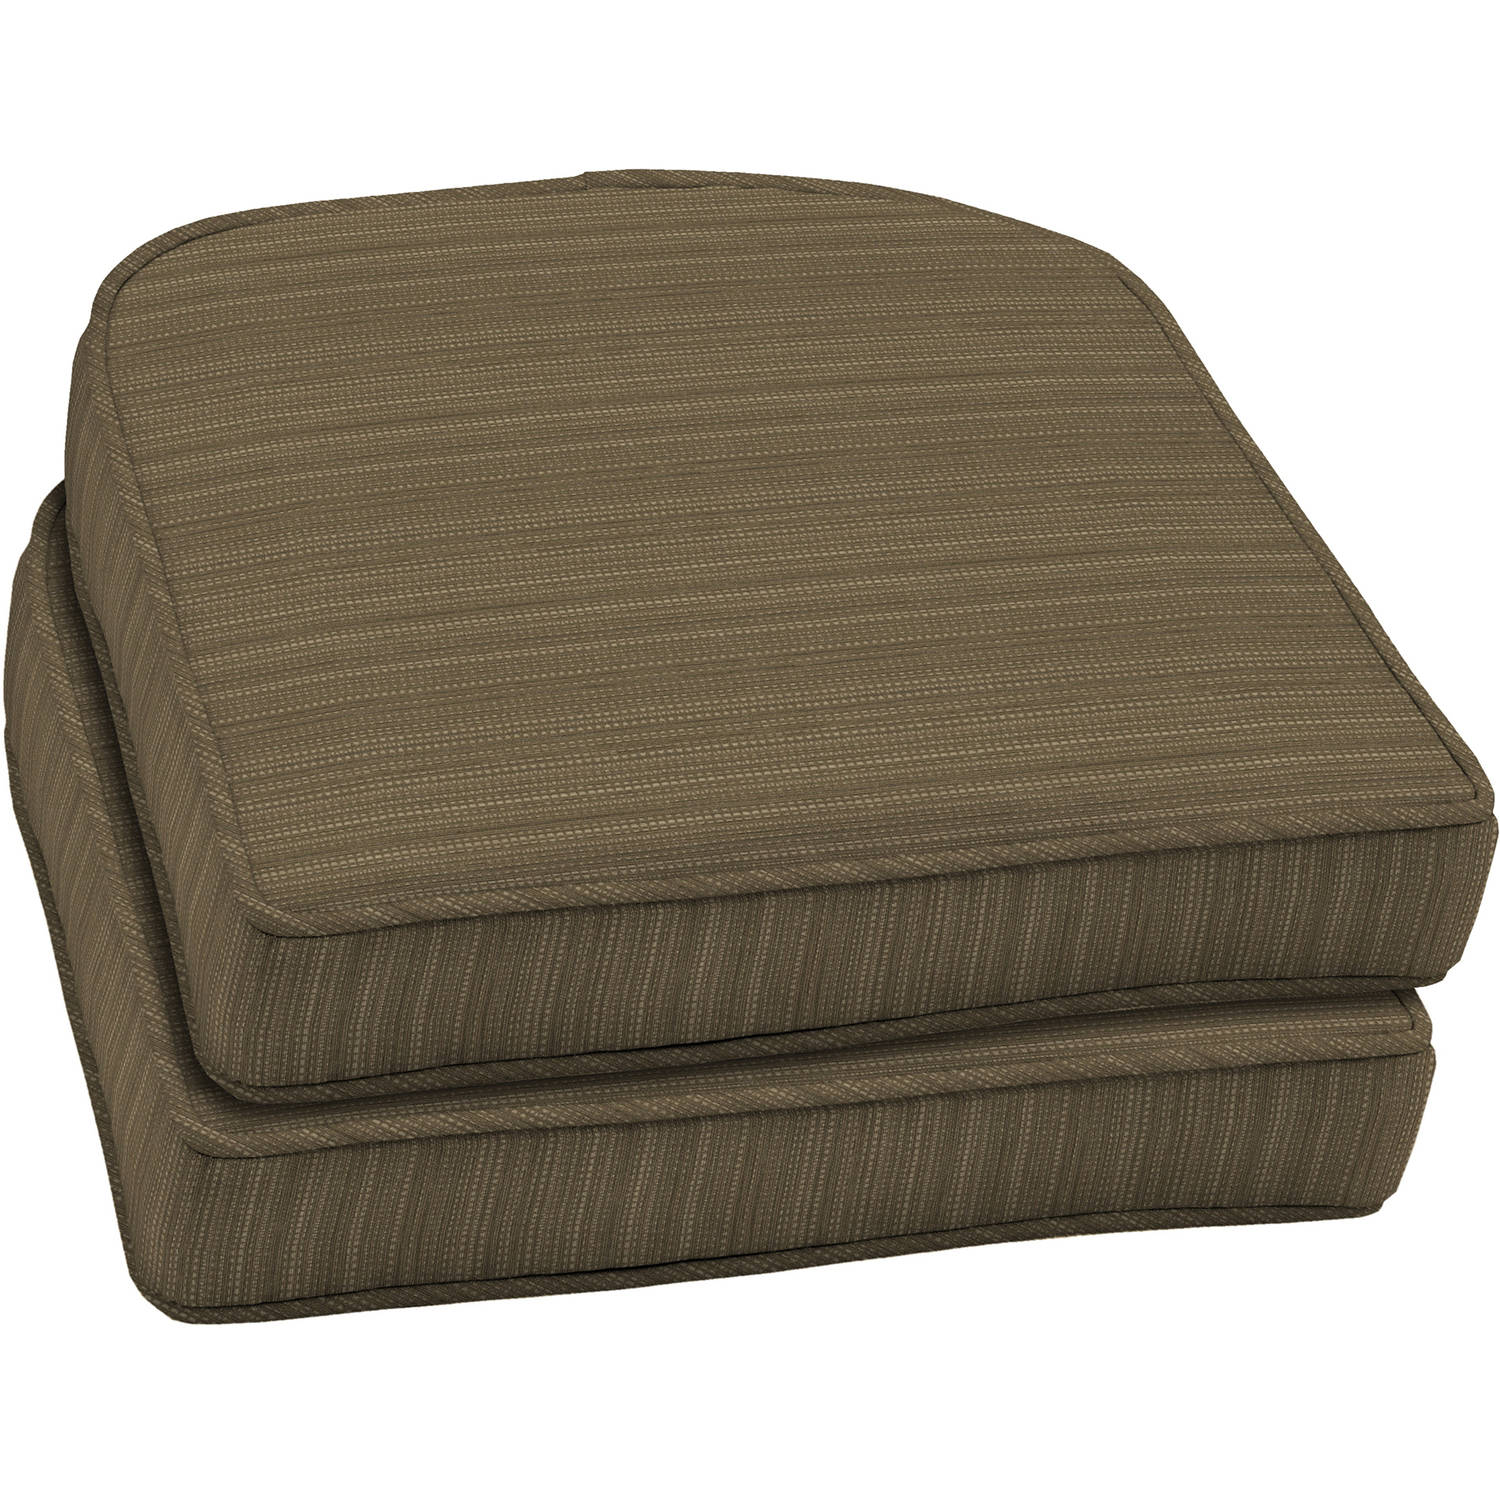 As Seen on TV Miracle Seat Cushion Walmart